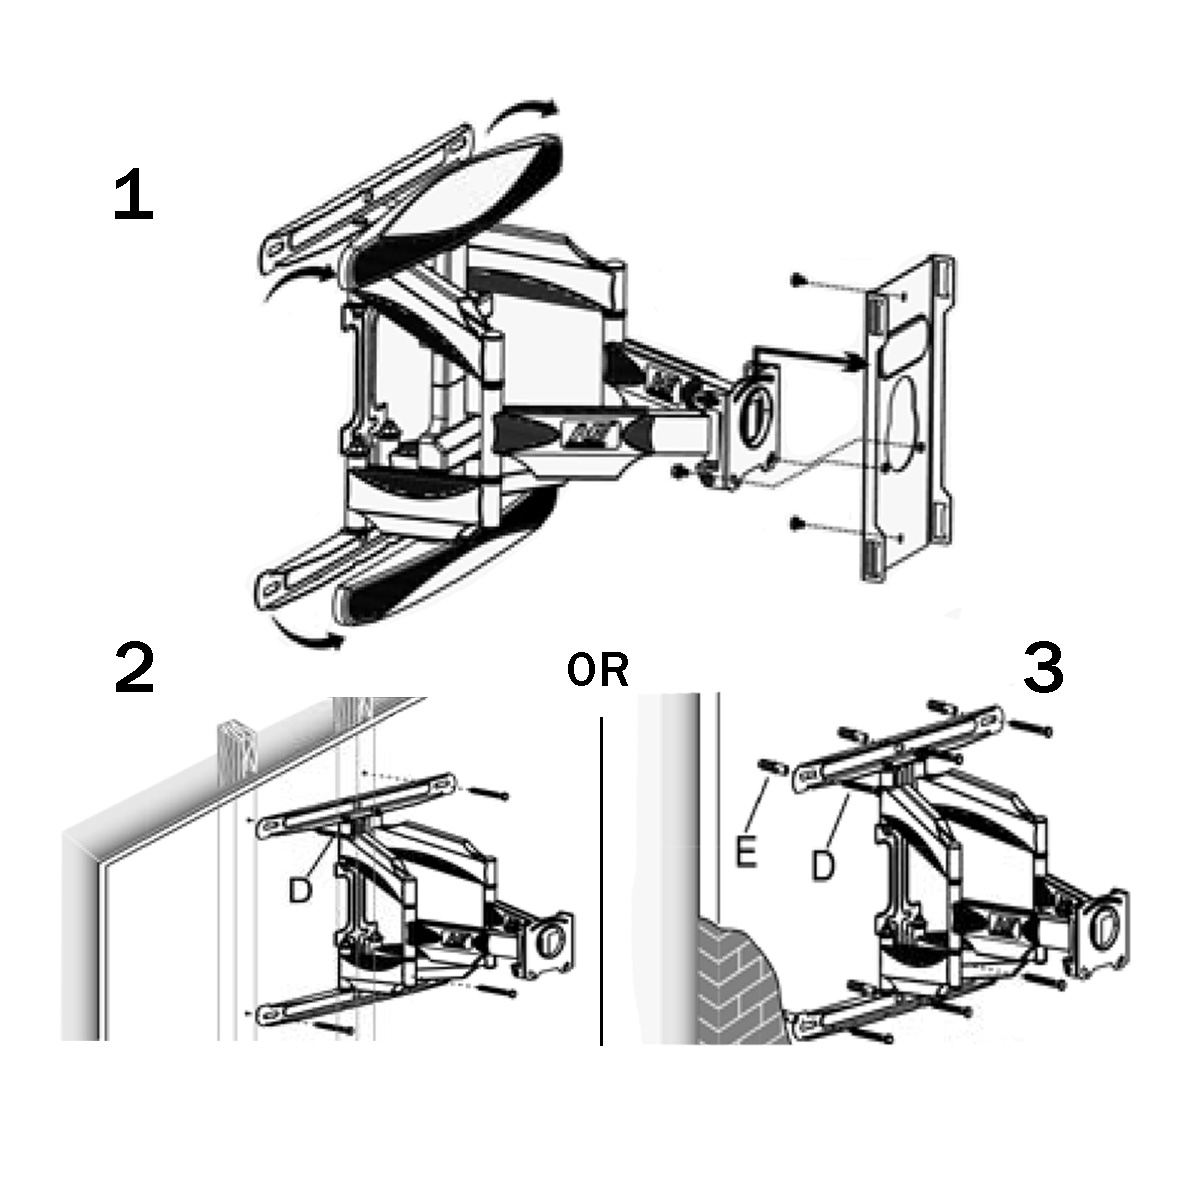 Universal Amf 4070 Dual Arm Articulating Tv Mount